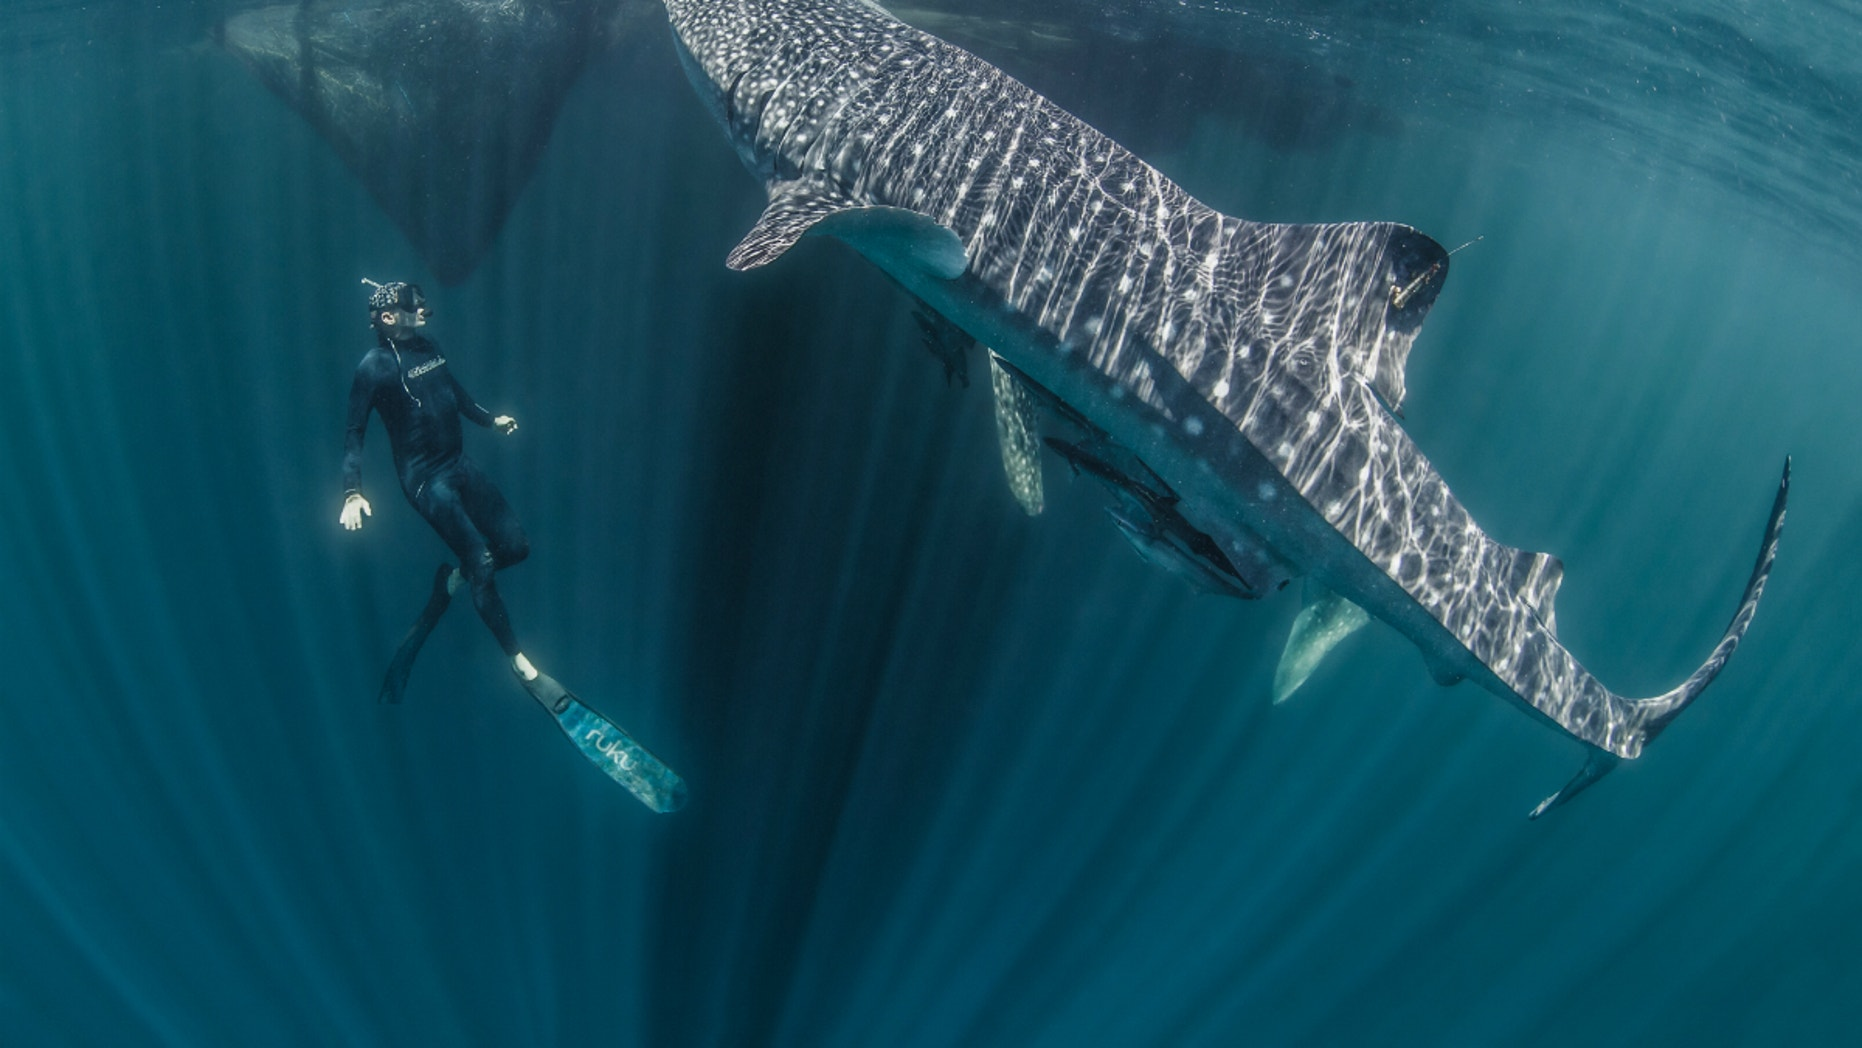 Marine ecologist Mark Erdmann swims with a tagged whale shark in Raja Ampat, Indonesia.